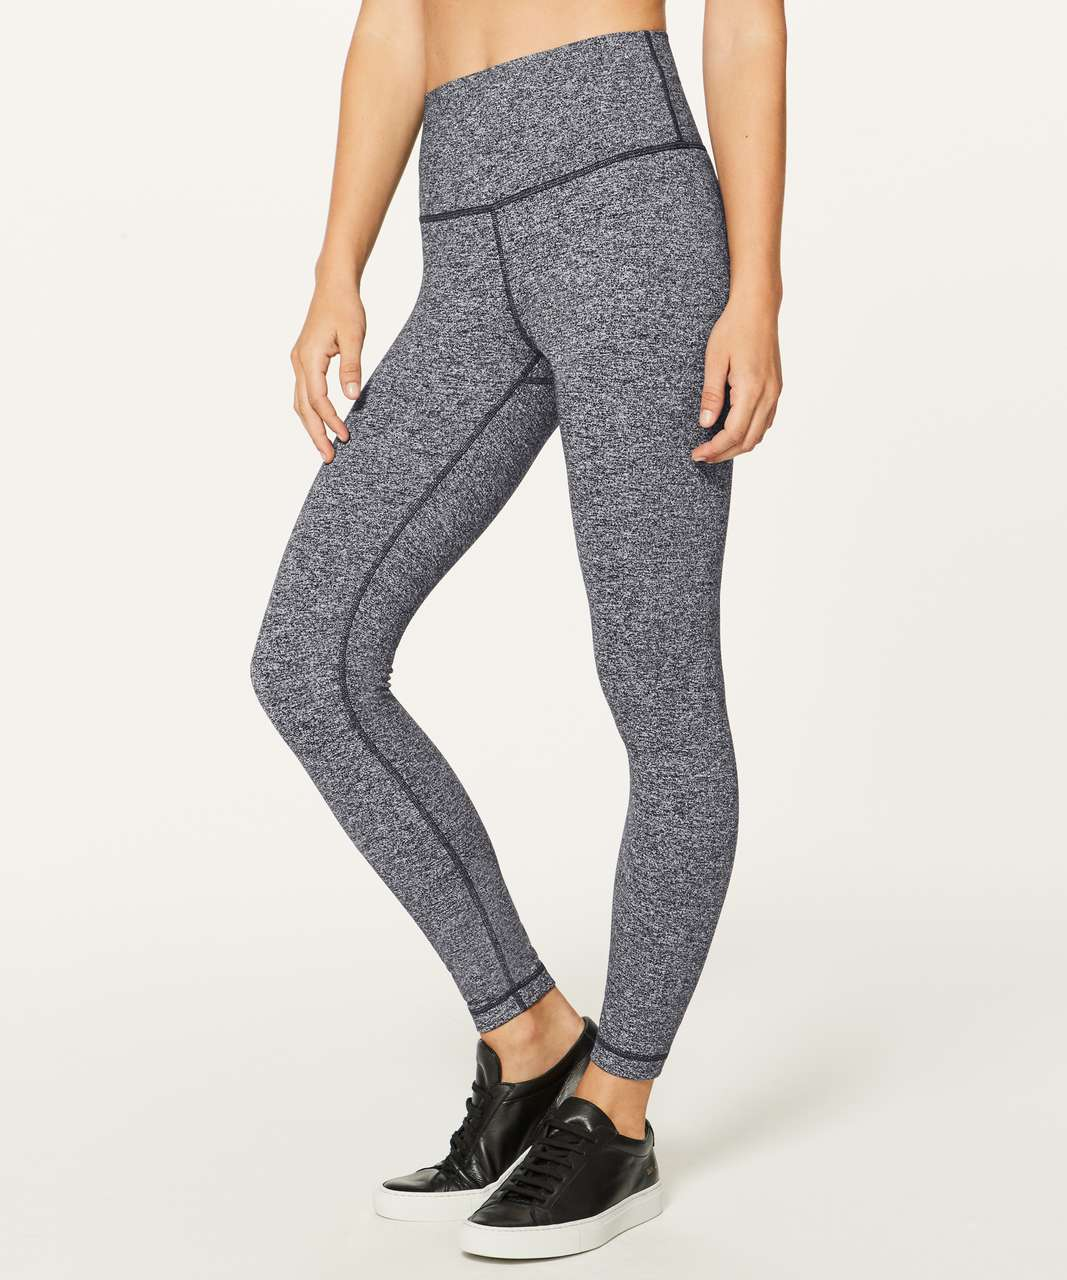 "Lululemon Wunder Under Hi-Rise 7/8 Tight *25"" - Heathered Black"